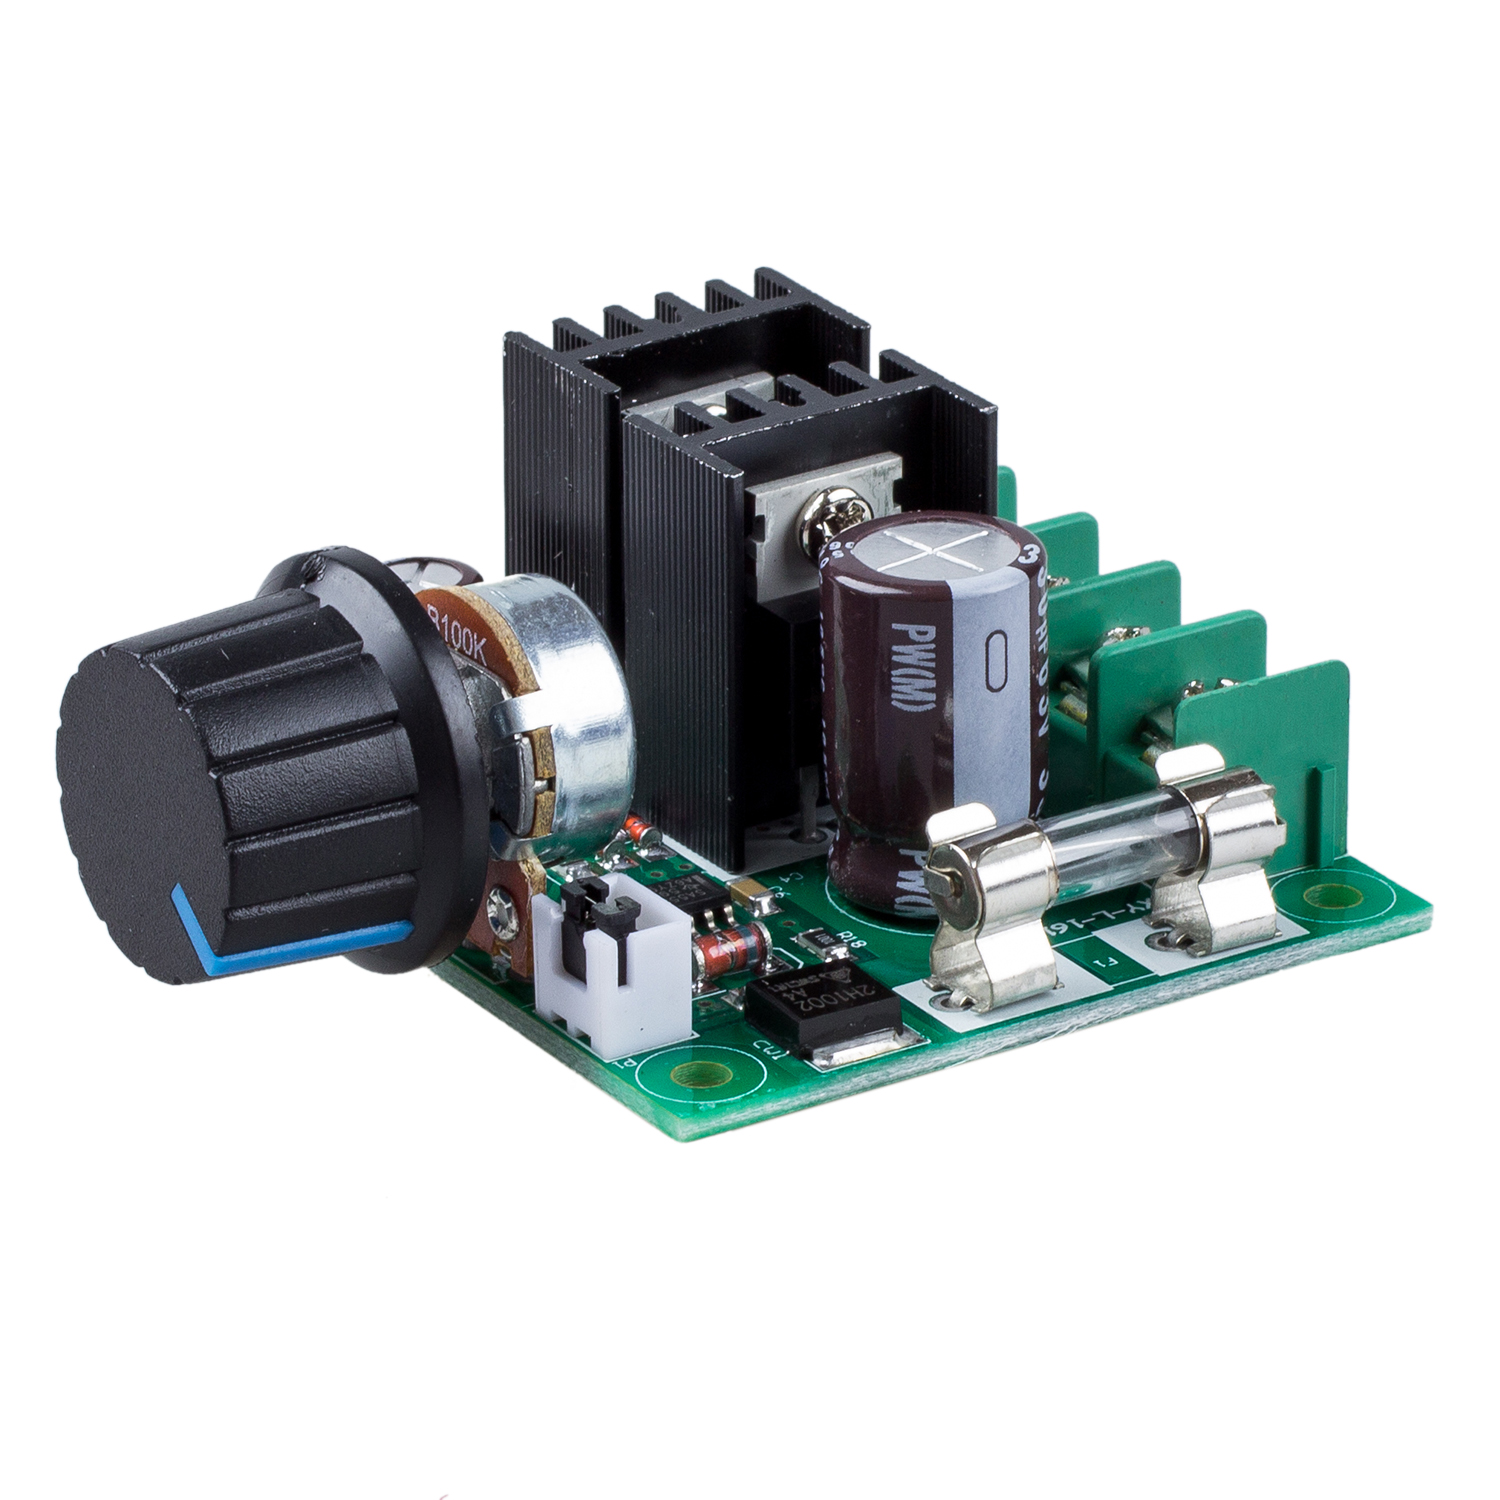 12V 40V 10A PWM DC Motor Speed Controller with Knob